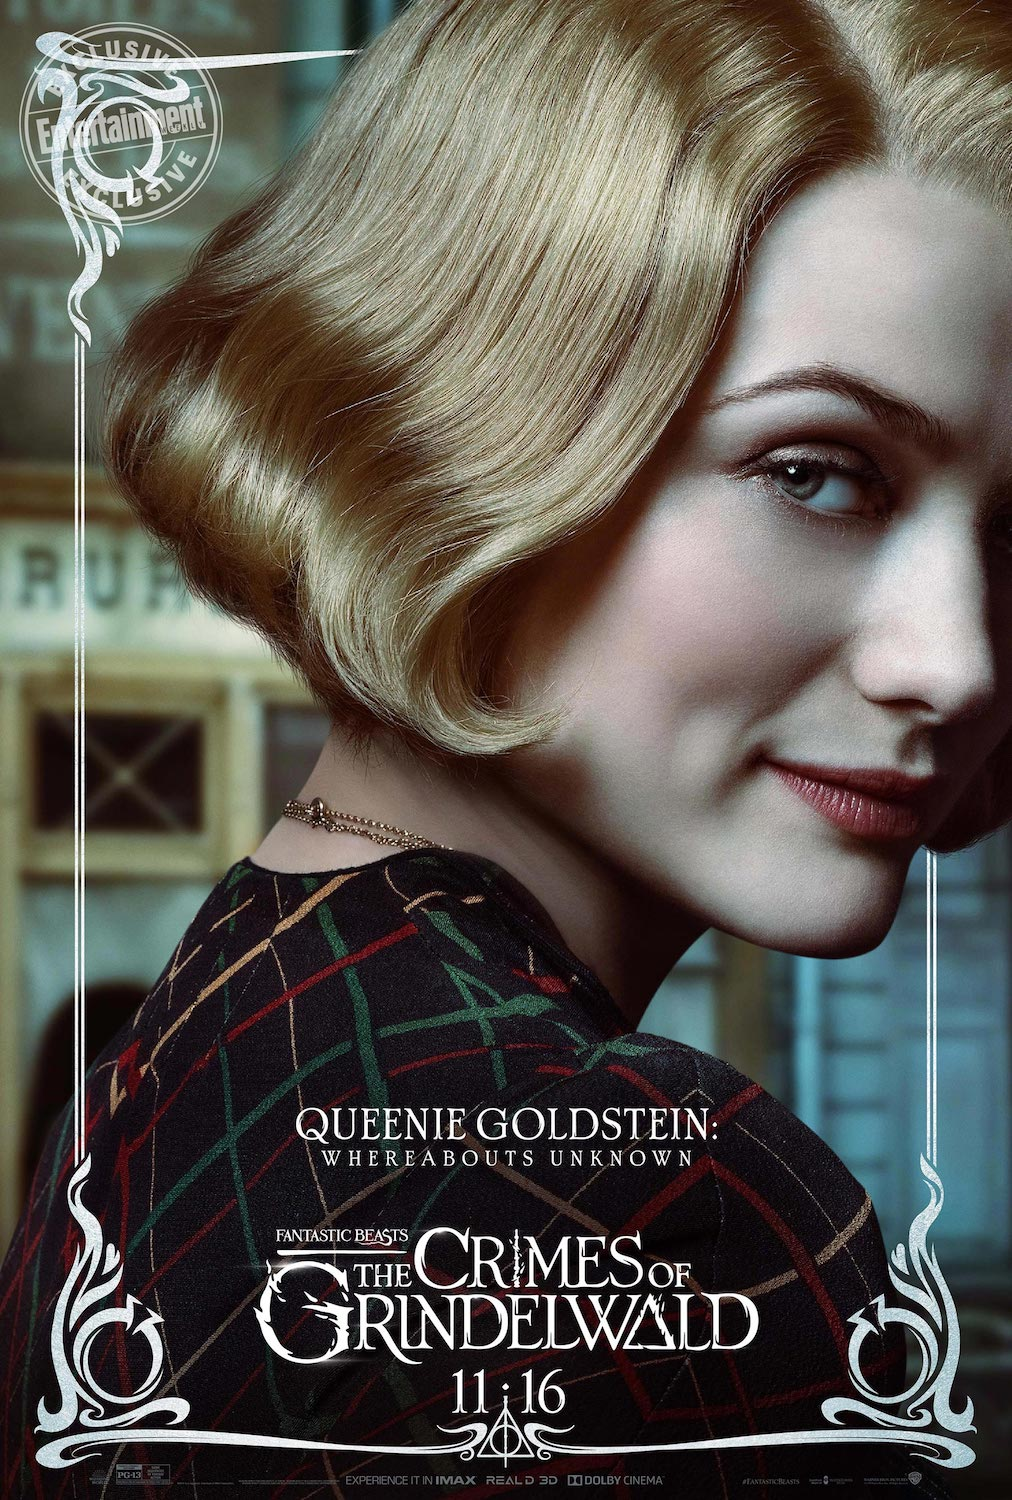 """After a promising ending to the first """"Fantastic Beasts"""" movie, it seems that nobody knows what Queenie is up to in """"Crimes of Grindelwald"""". Will this secret be revealed?"""